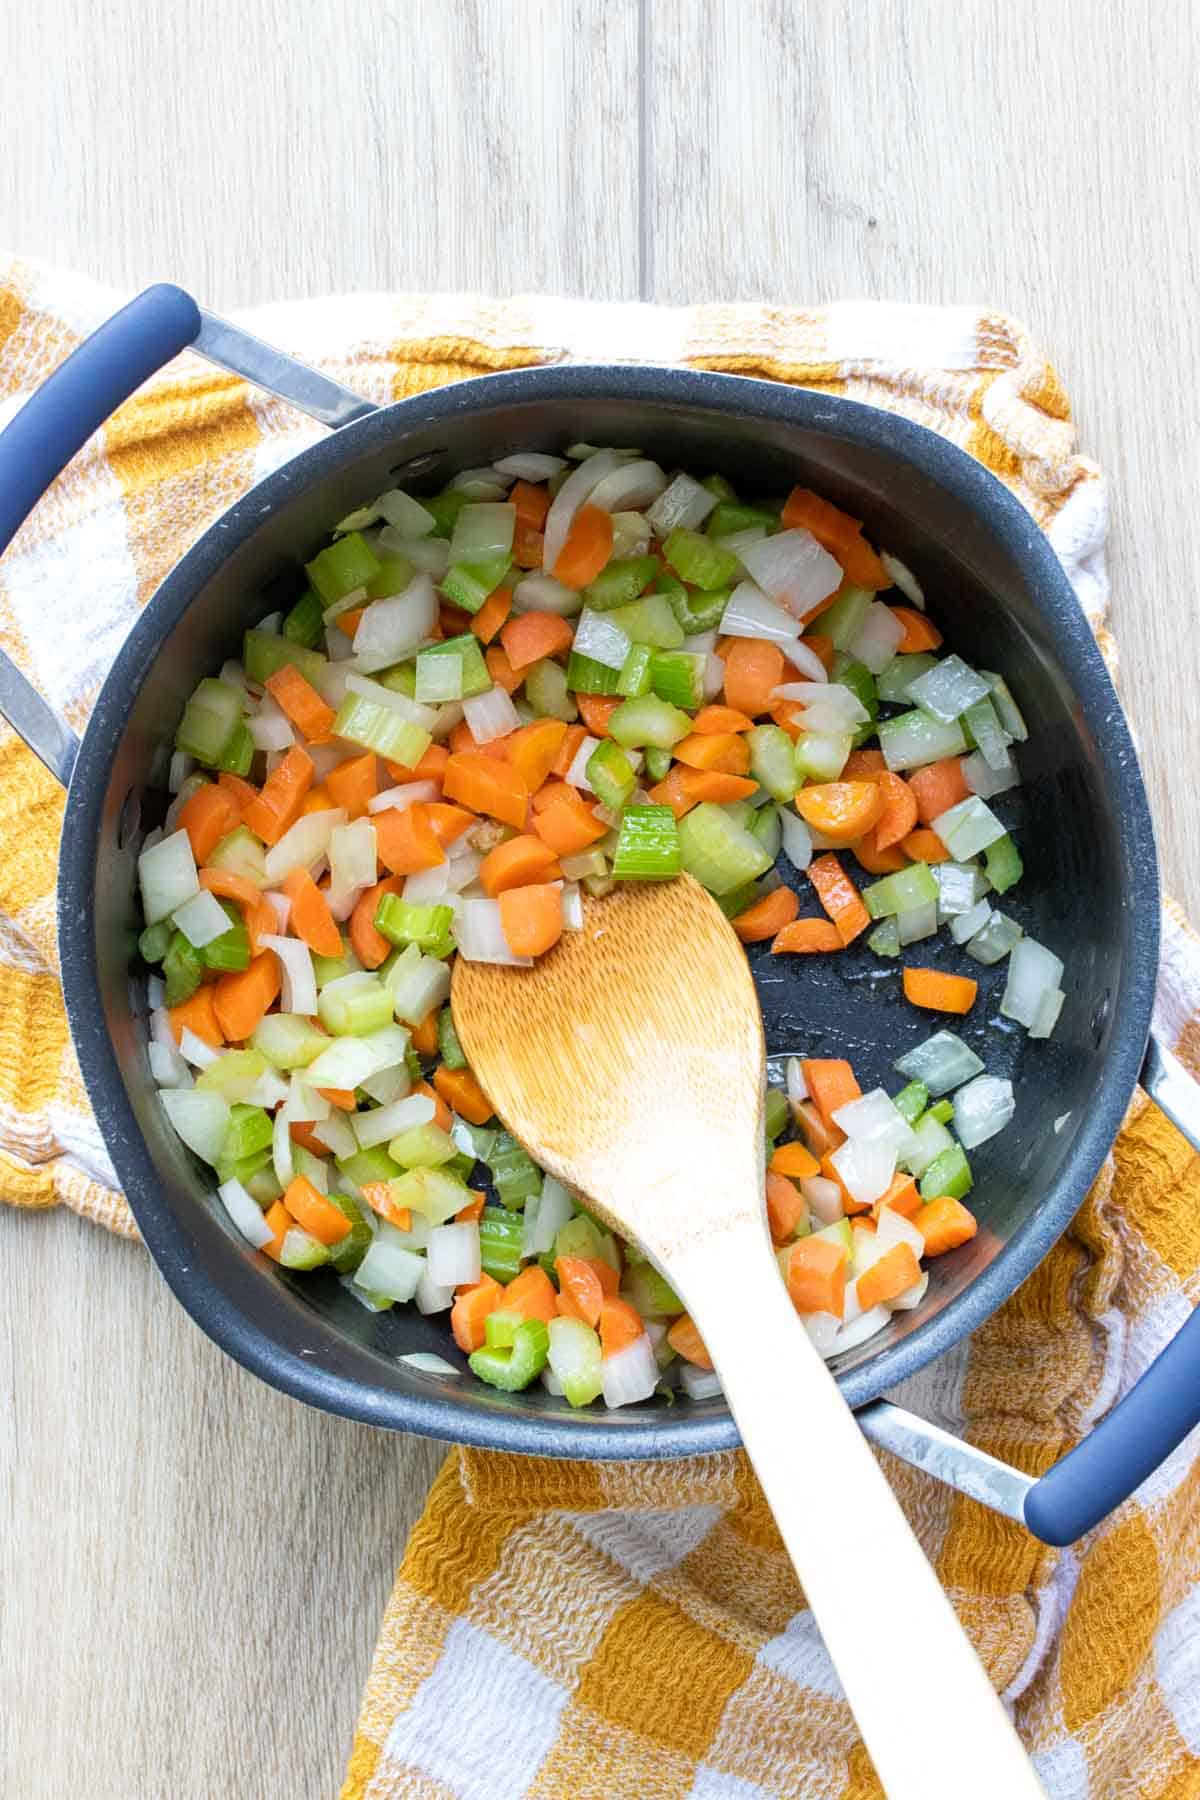 Wooden spoon mixing carrots, celery and onion in a pot on a checkered towel